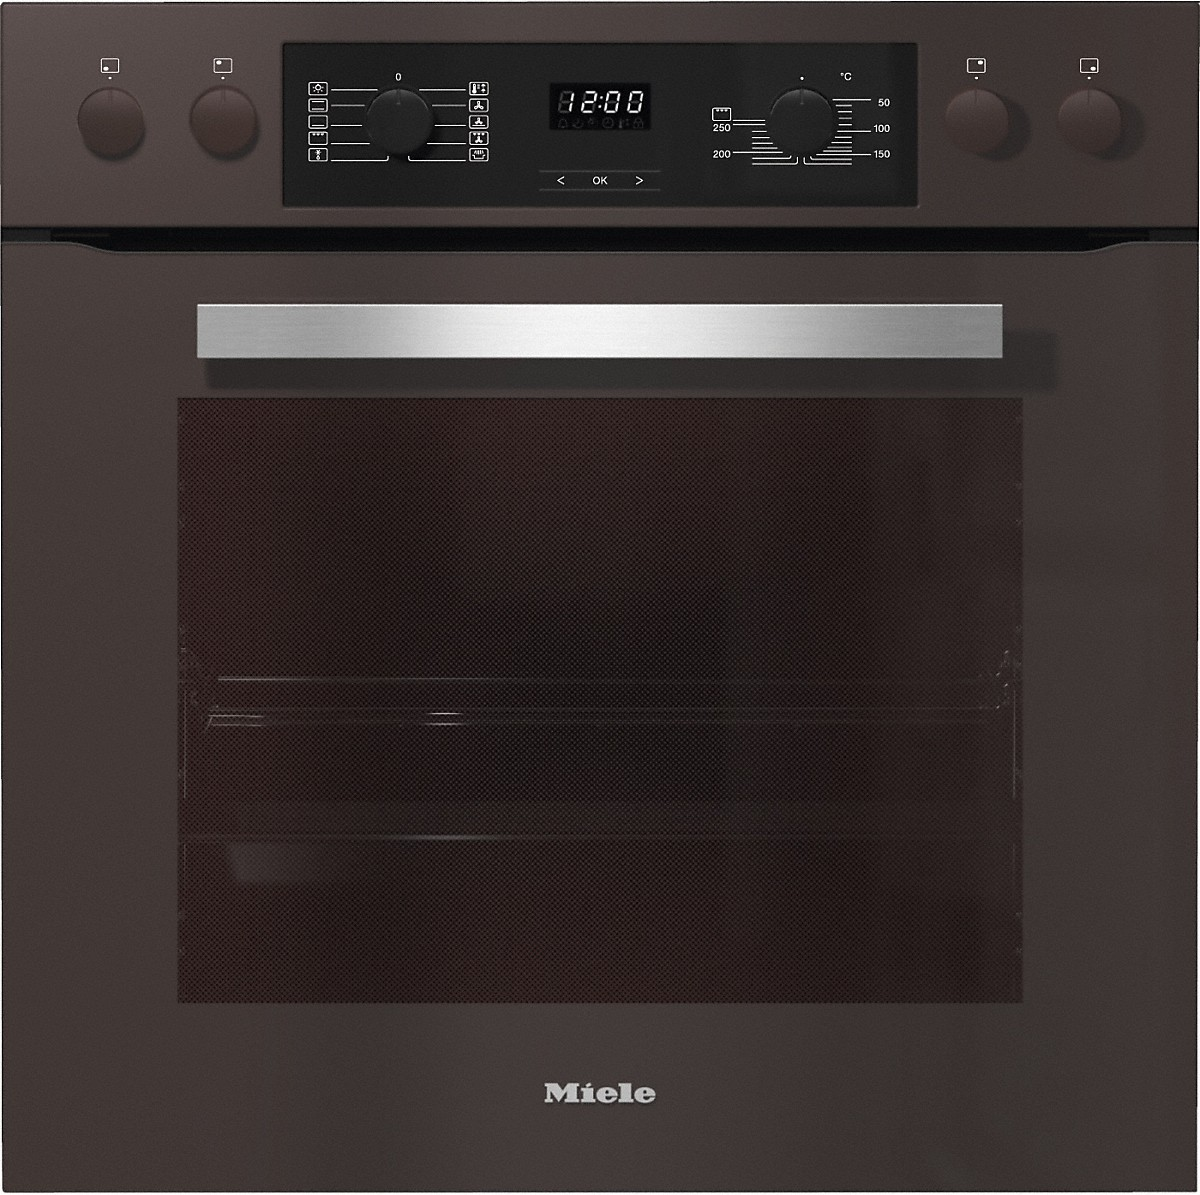 miele herdset h 2265 e active havannabraun km6024 vs elektro. Black Bedroom Furniture Sets. Home Design Ideas